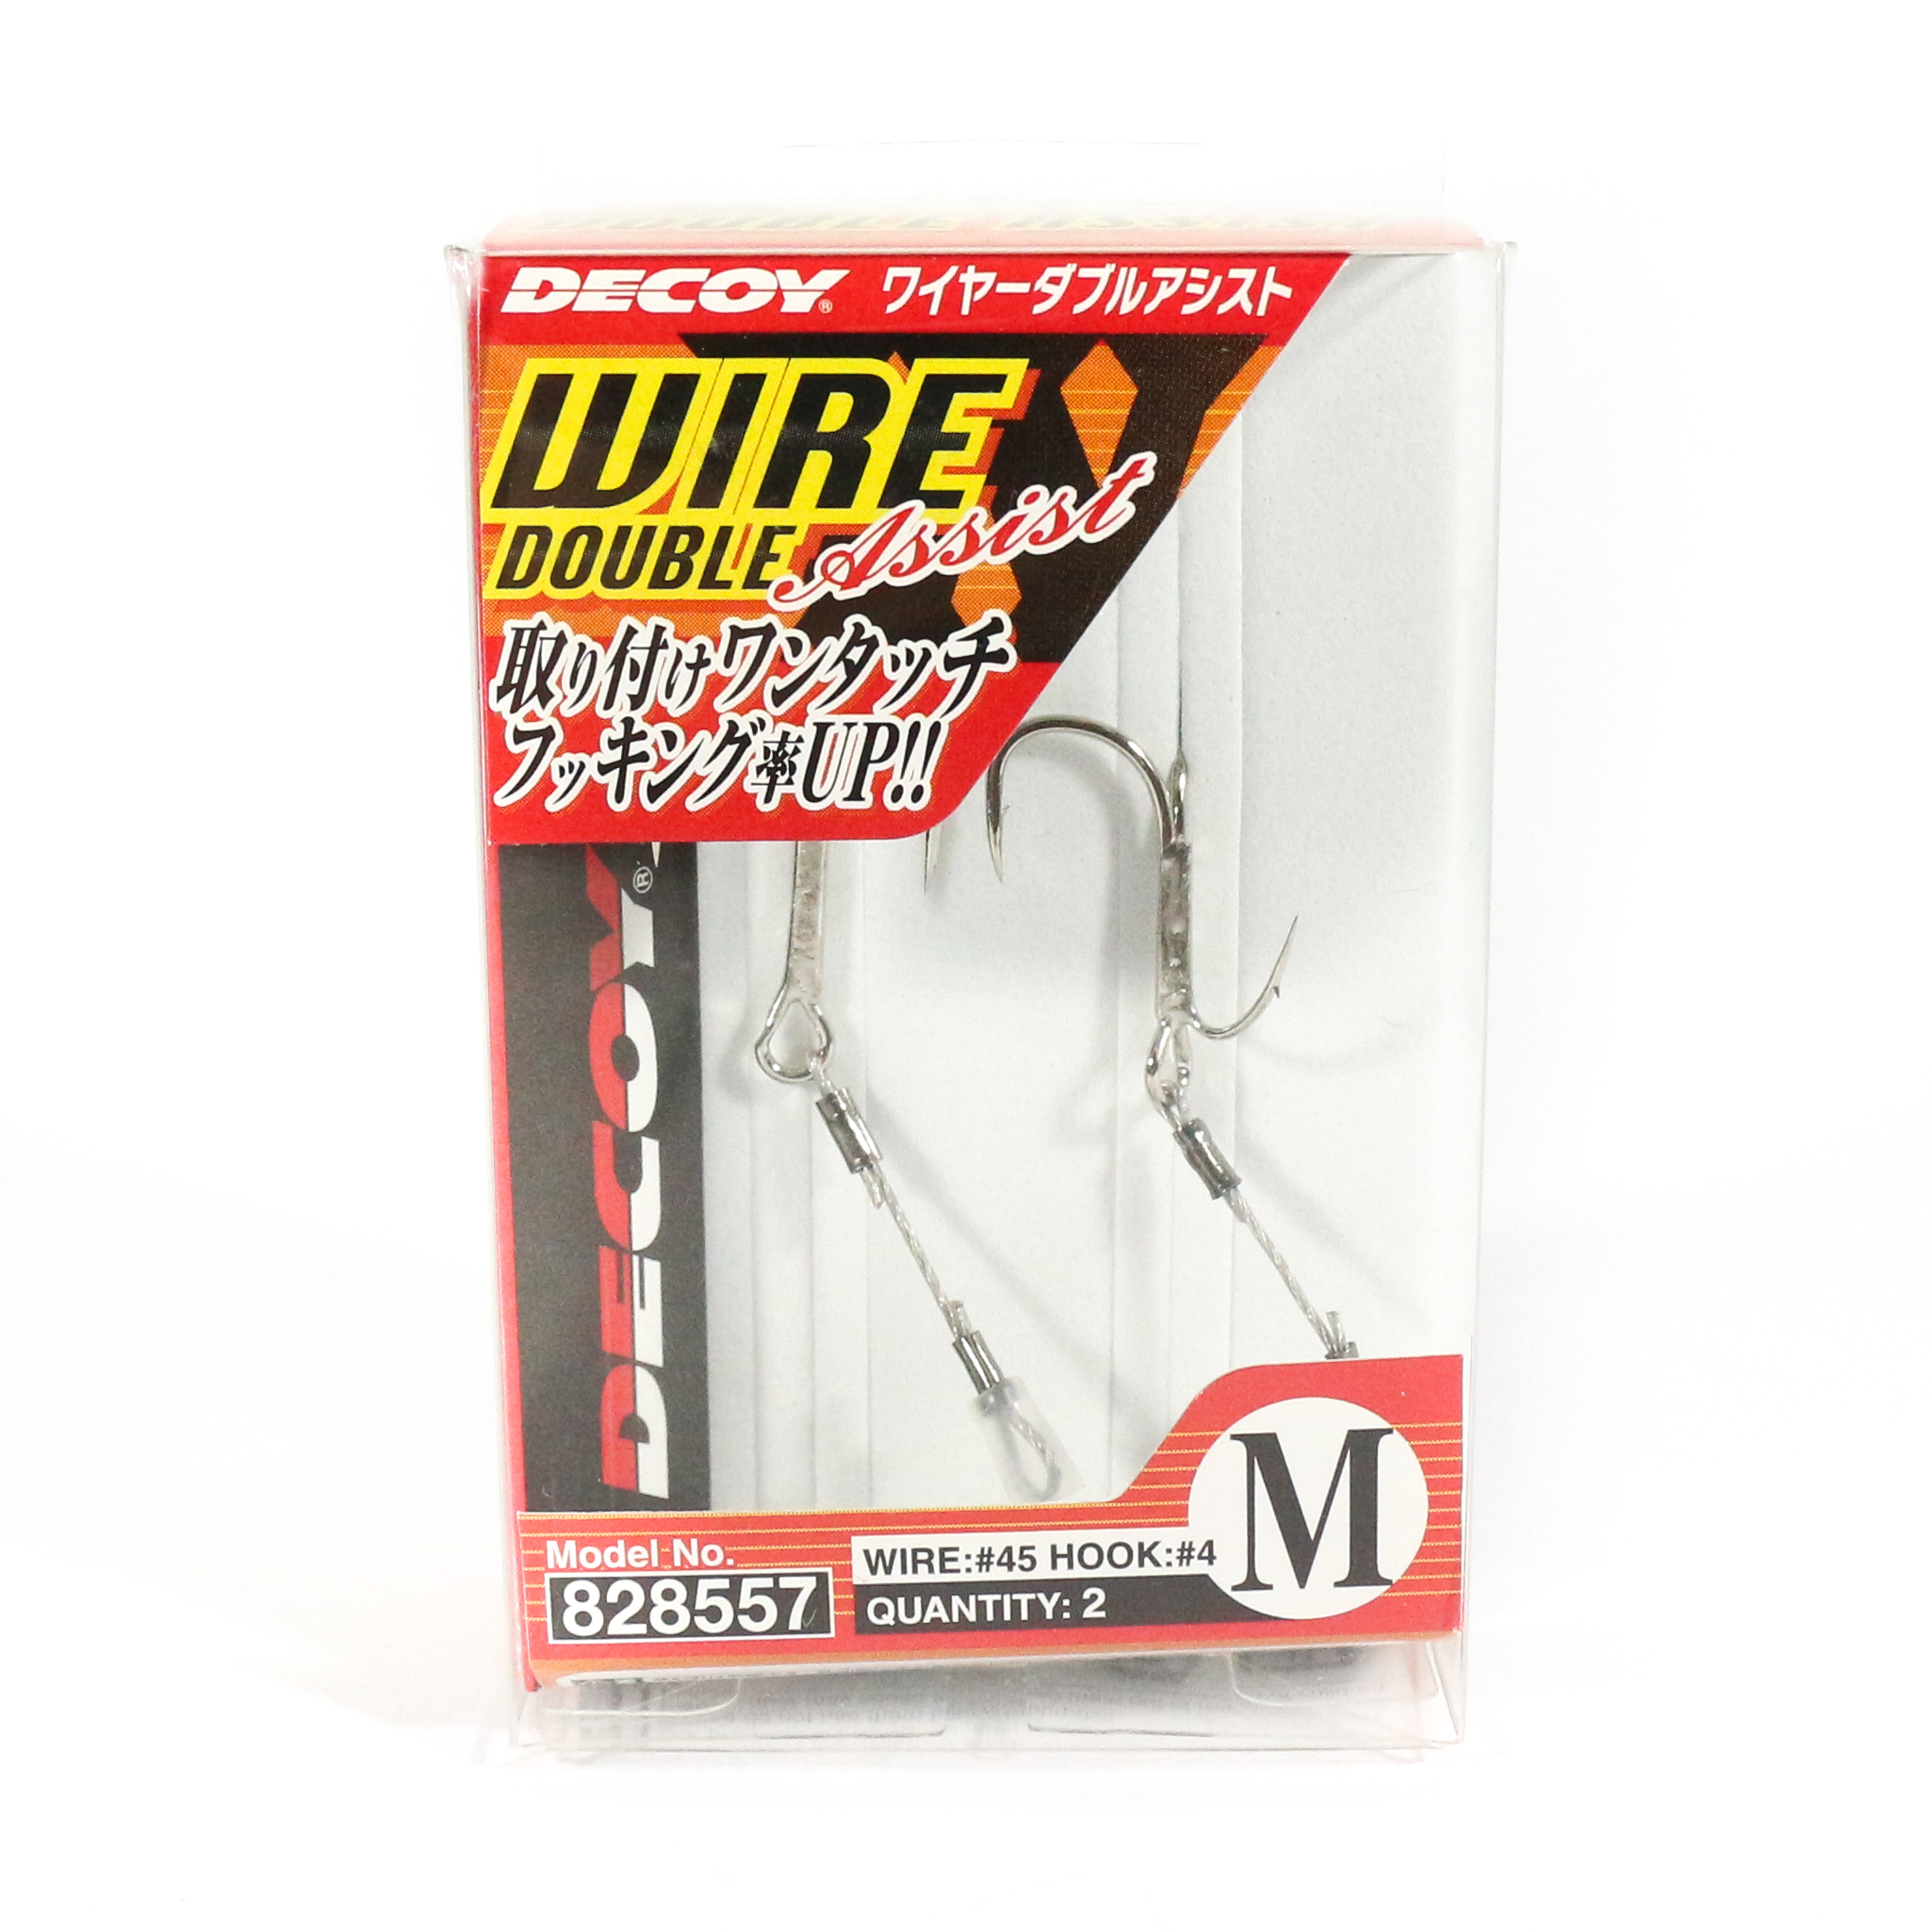 Decoy WA-51 Wire Double Assist for Soft Lure Size M (8557)